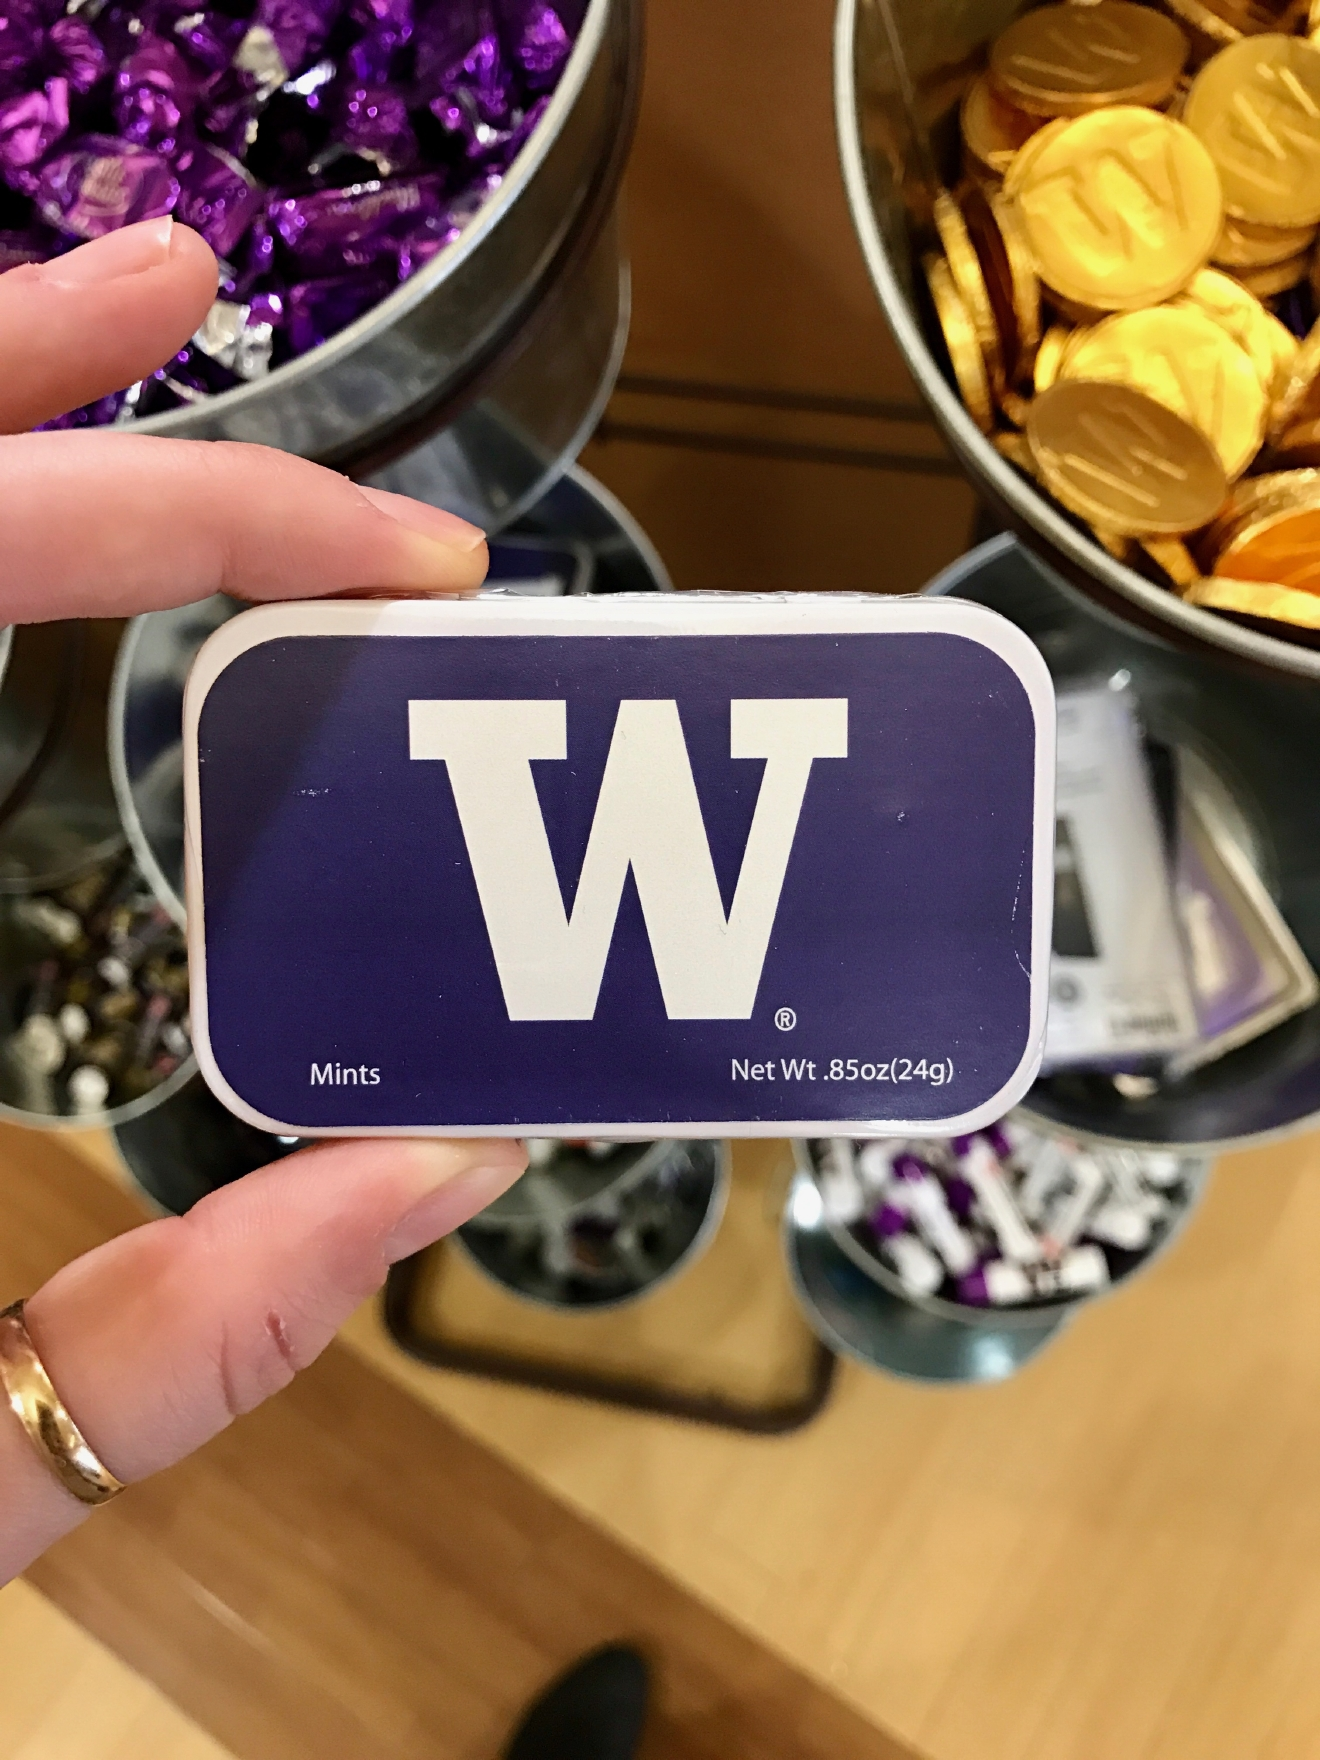 UW Mints - $3.95                                          Whether you're a current student, alum, or just *love* the Dawgs, it's a pretty exciting time to be a Husky fan right now. Just to catch you up, the University of Washington football team is having one of their best seasons in years, and will be playing the Peach Bowl in Atlanta on December 31st. If you know a Dawg fan, they're probably salivating at the mouth right about now. Which is why it's a perfect time to give them a themed gift! Here are some of the coolest Husky gear we saw at the University Bookstore on the Avenue during our last visit. Pro Tip: They're open 10 a.m. - 7 p.m. on Christmas Eve! (Image: Britt Thorson / Seattle Refined)